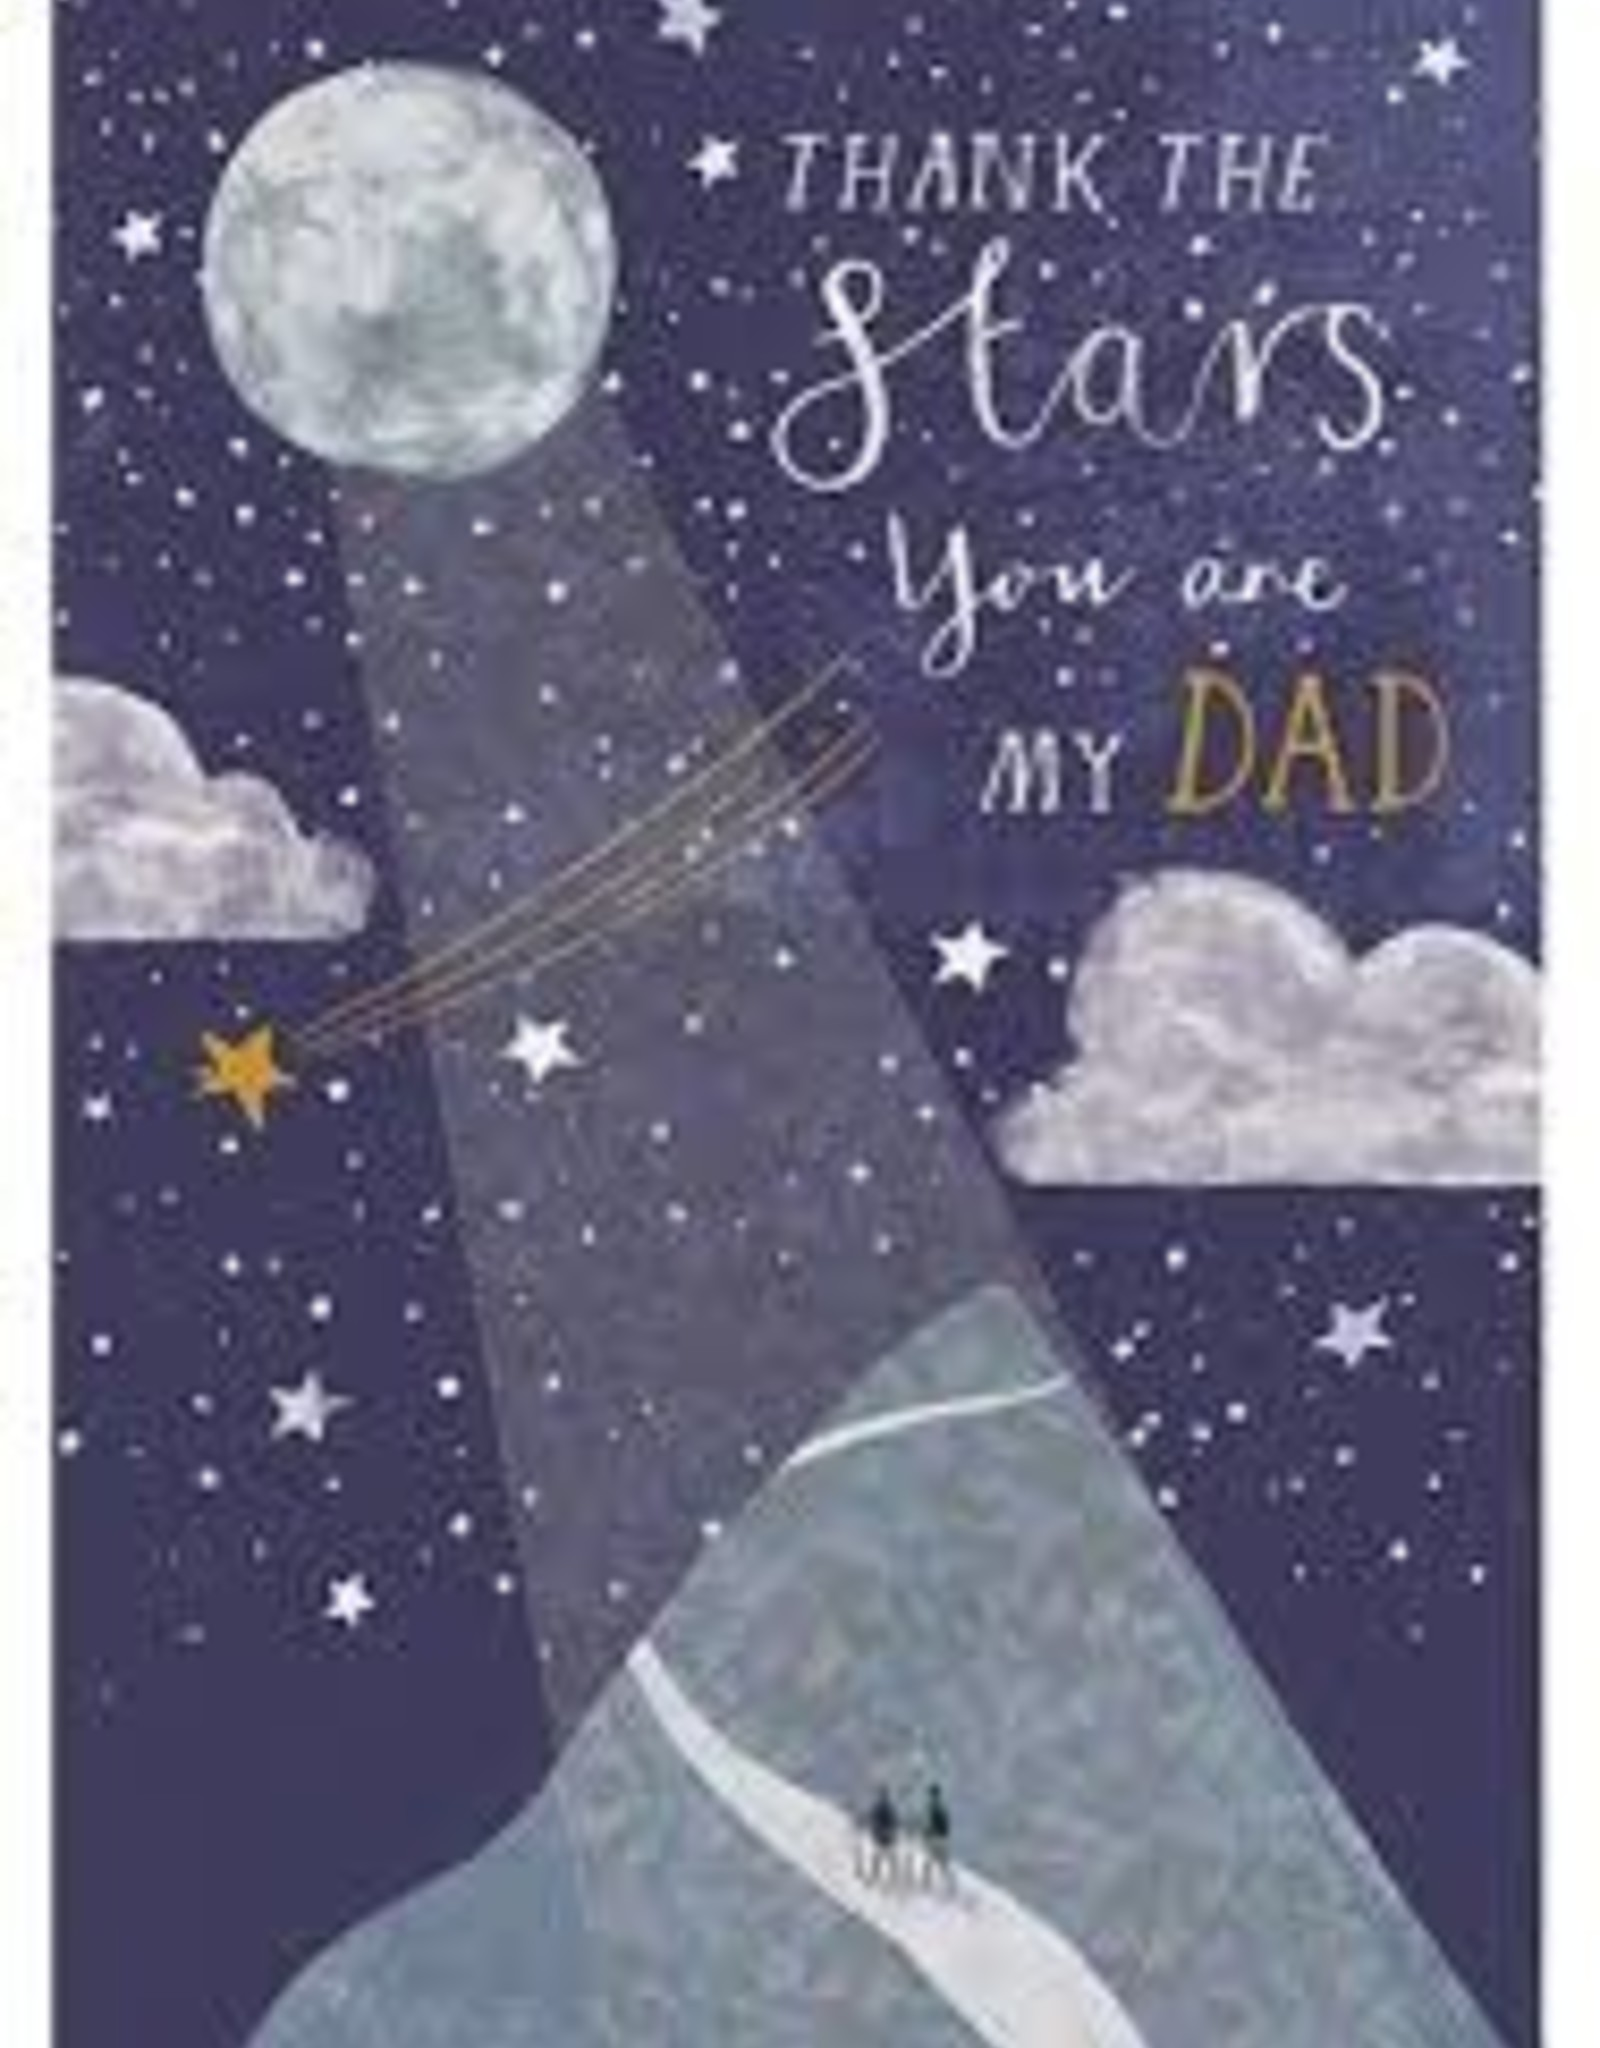 Father's Day Card - Thank The Stars You Are My Dad